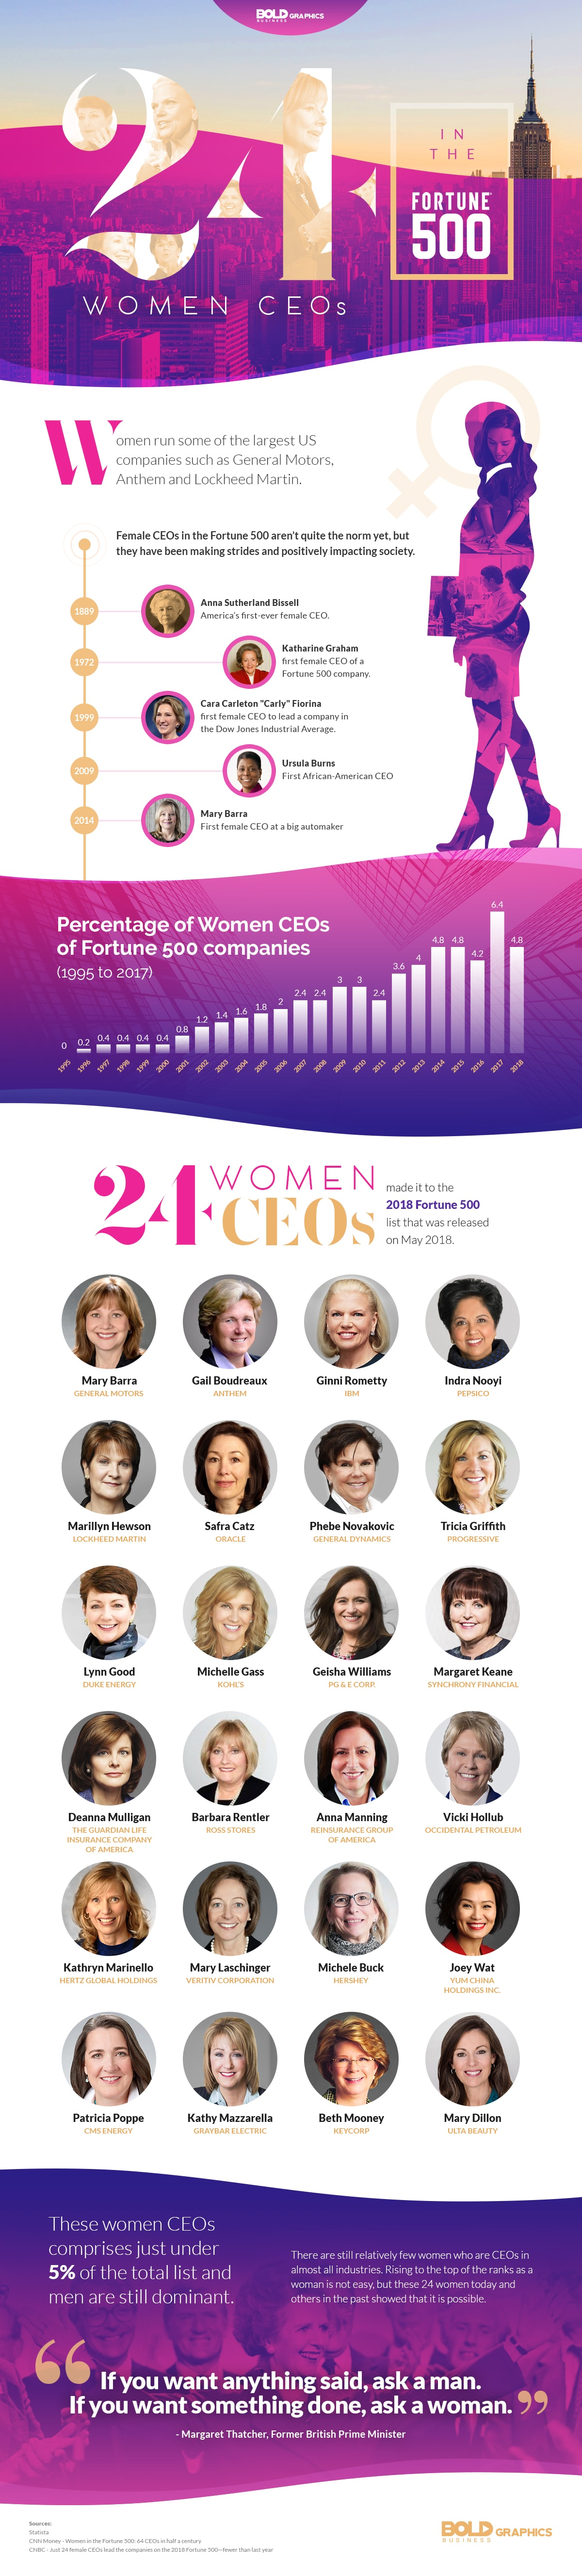 24 Women CEOs in the Fortune 500 Infographic